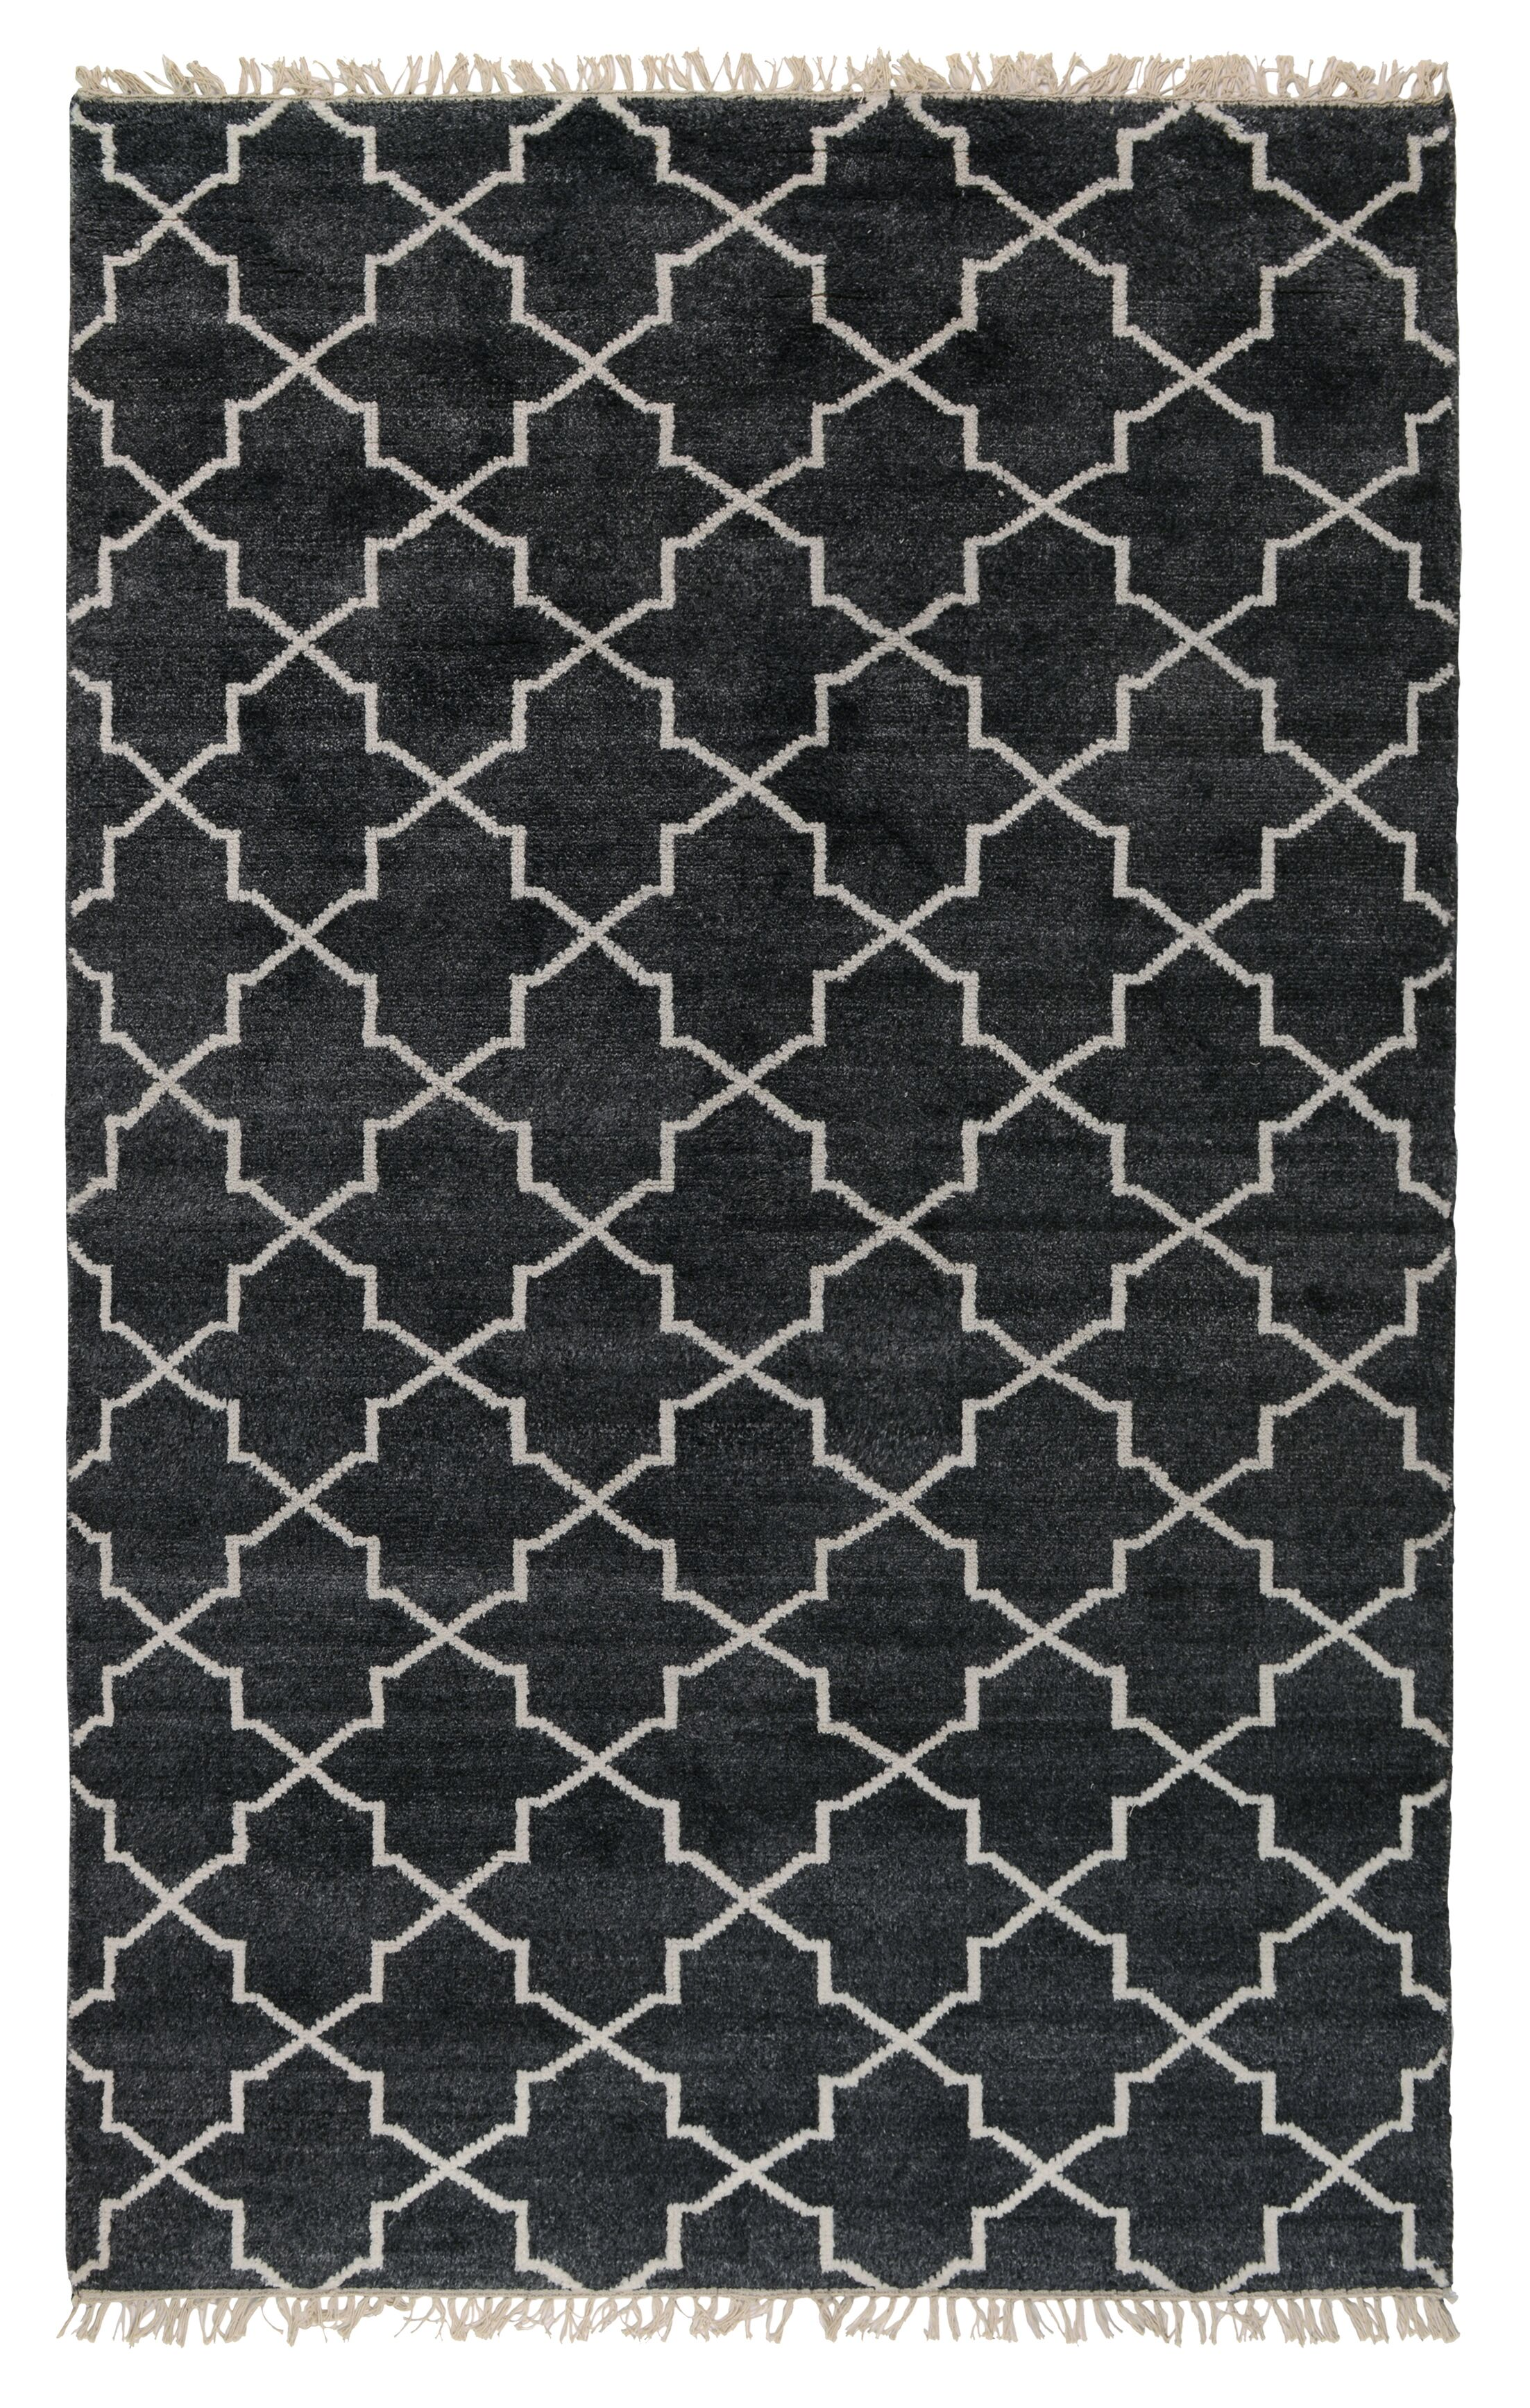 Lakeview Hand-Knotted Charcoal Area Rug Rug Size: 5' x 8'